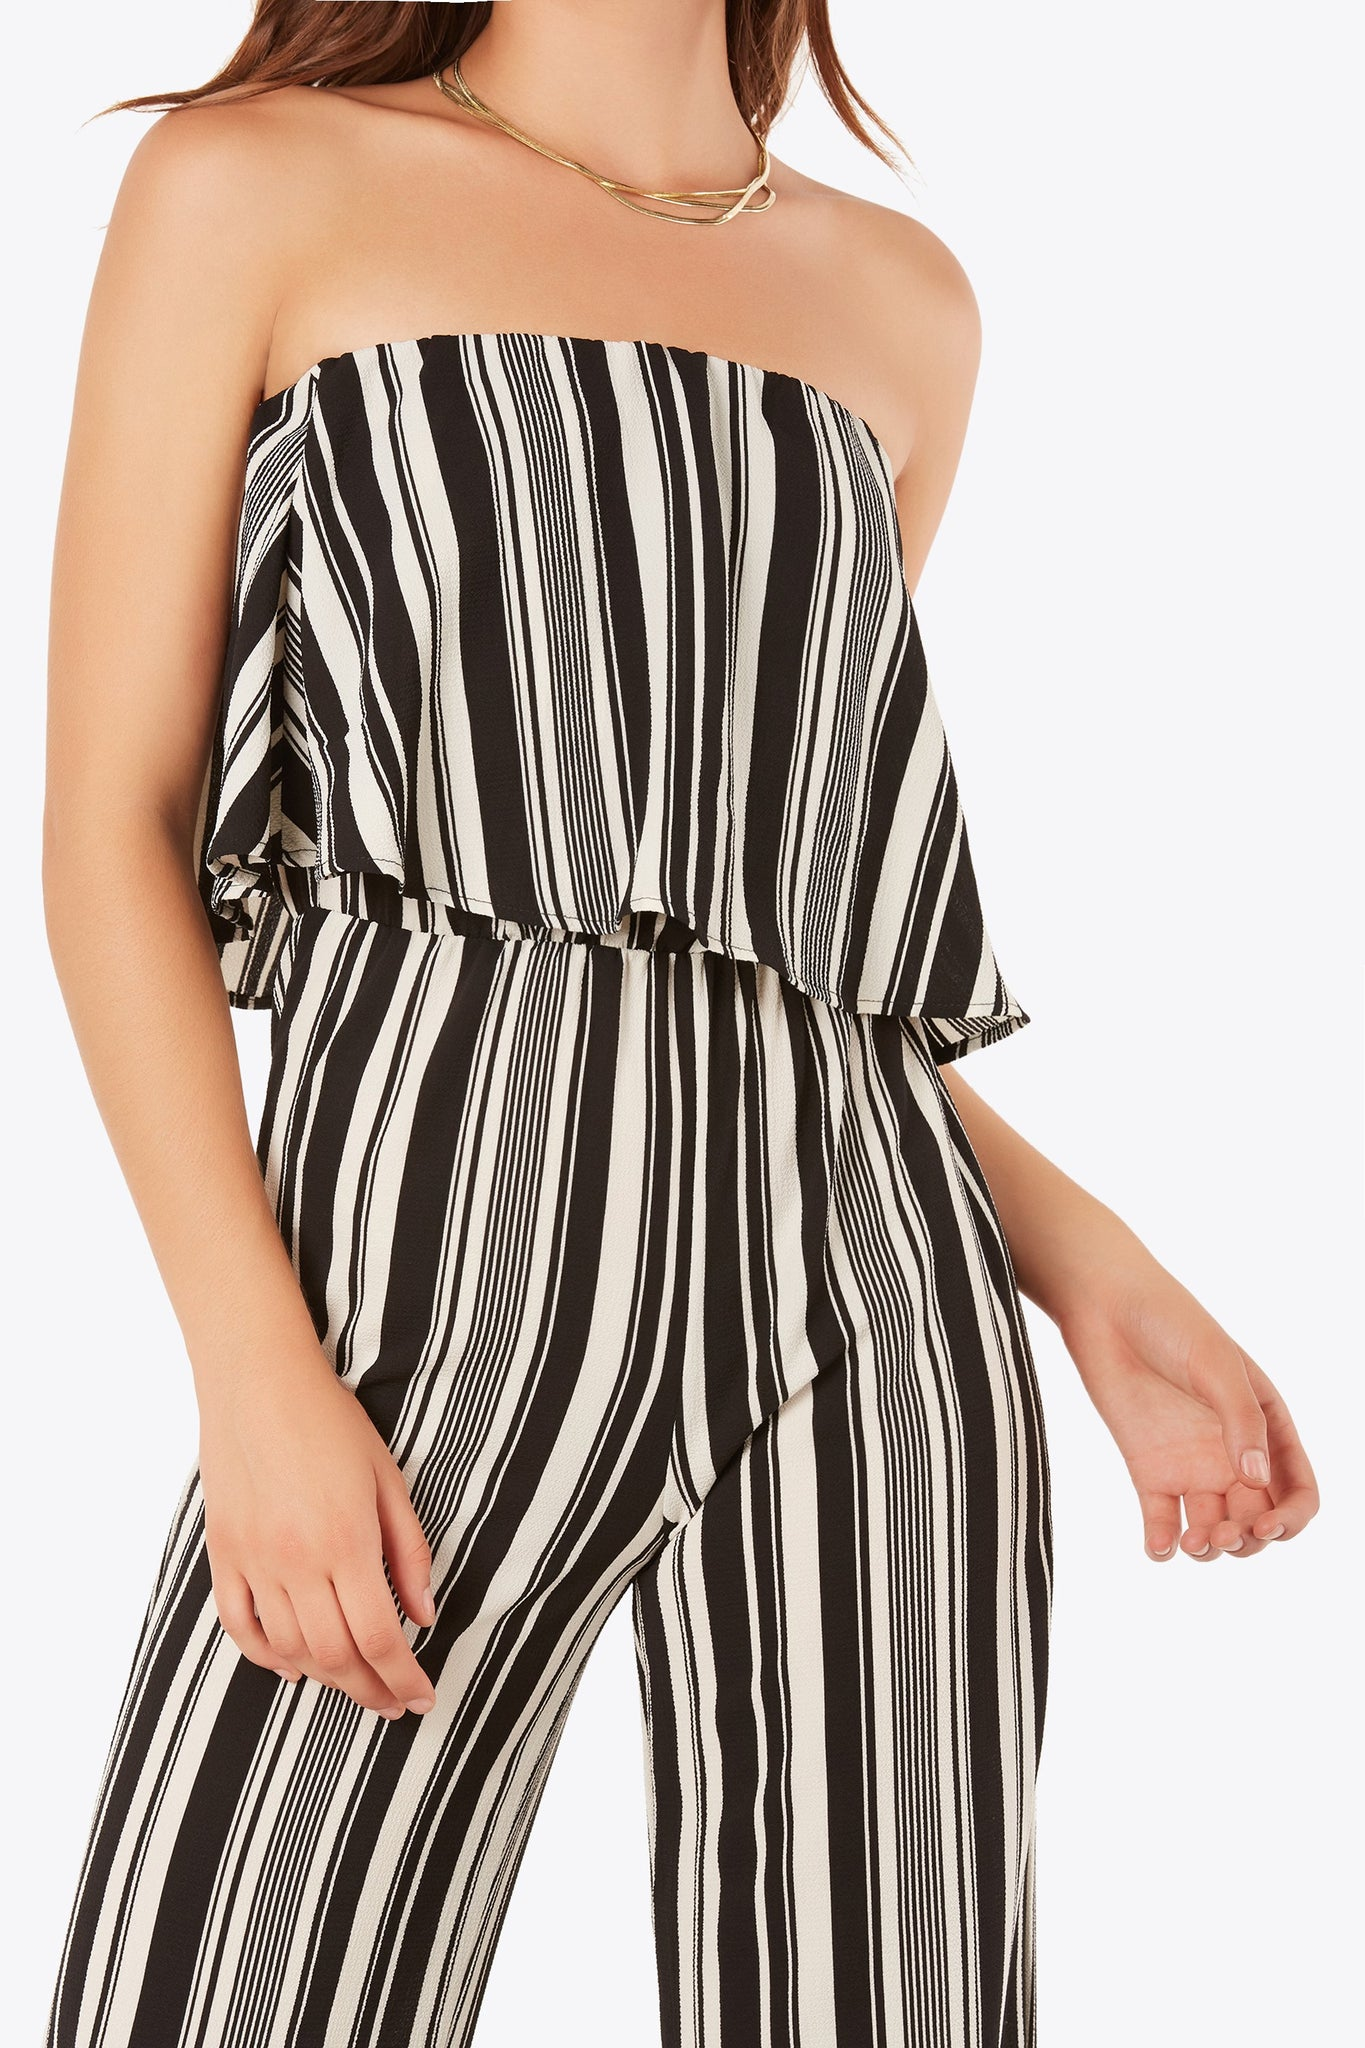 Strapless tube jumpsuit with bold stripe pattern throughout. Simple tiered design with wide leg fit.